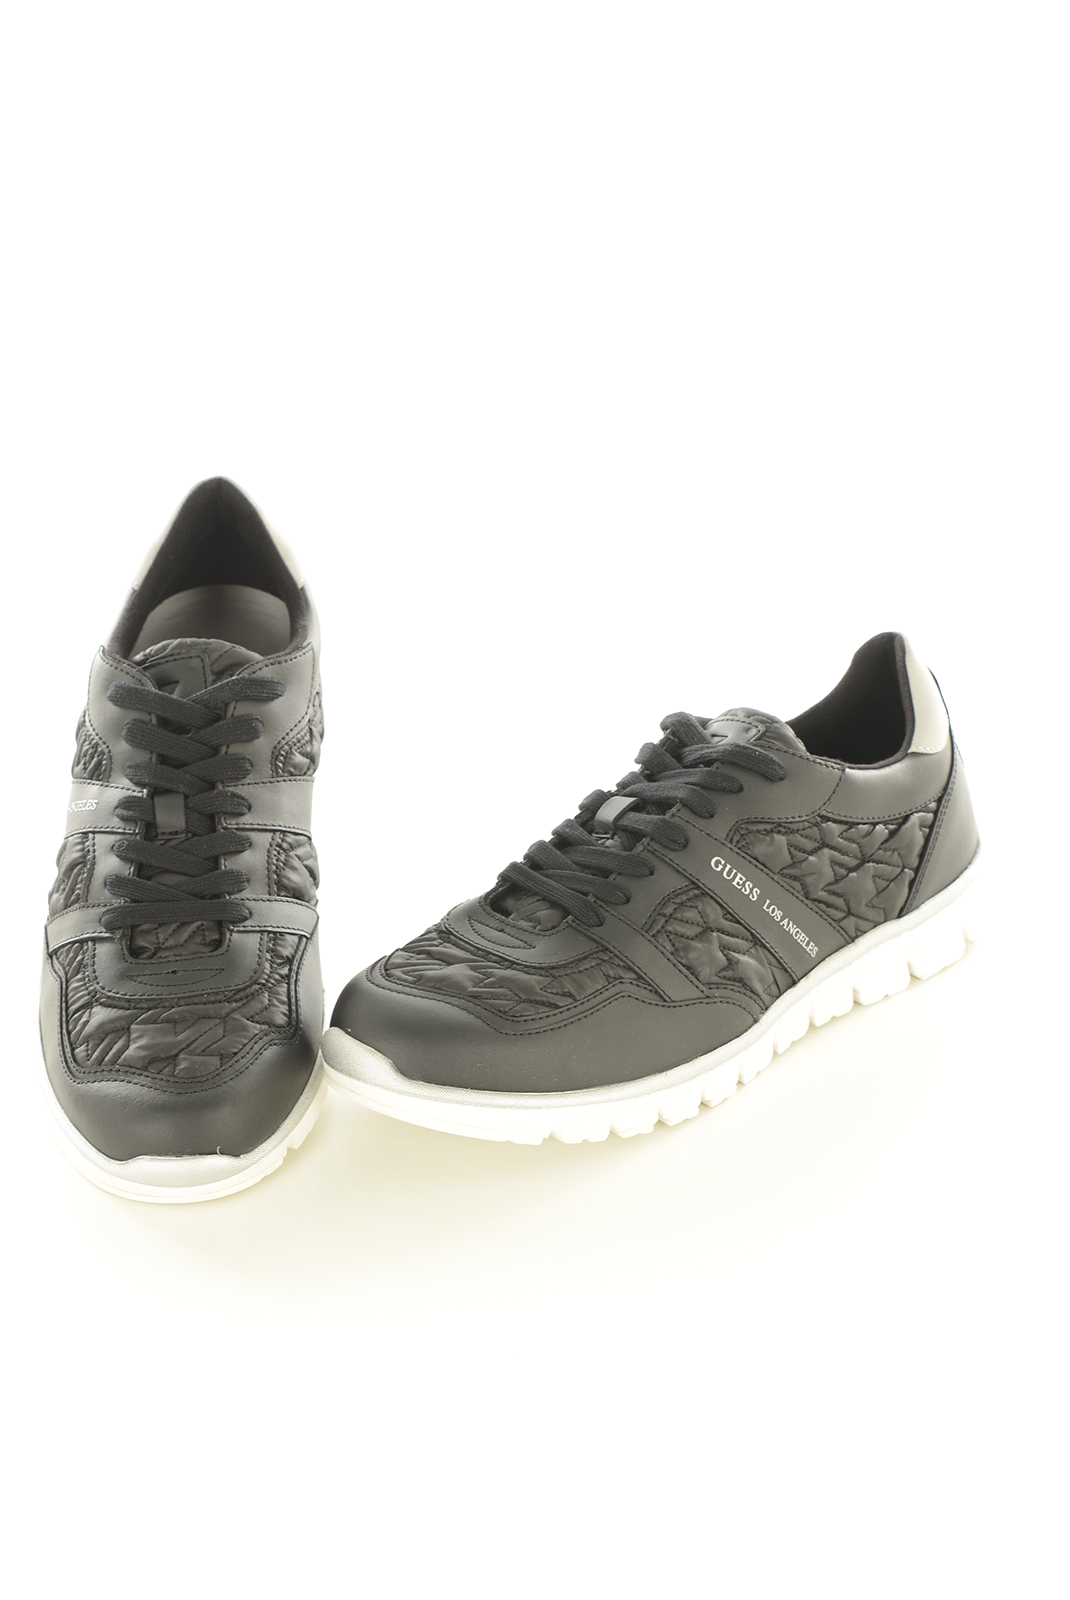 Chaussures   Guess jeans FMGRA4FAB12 BLACK